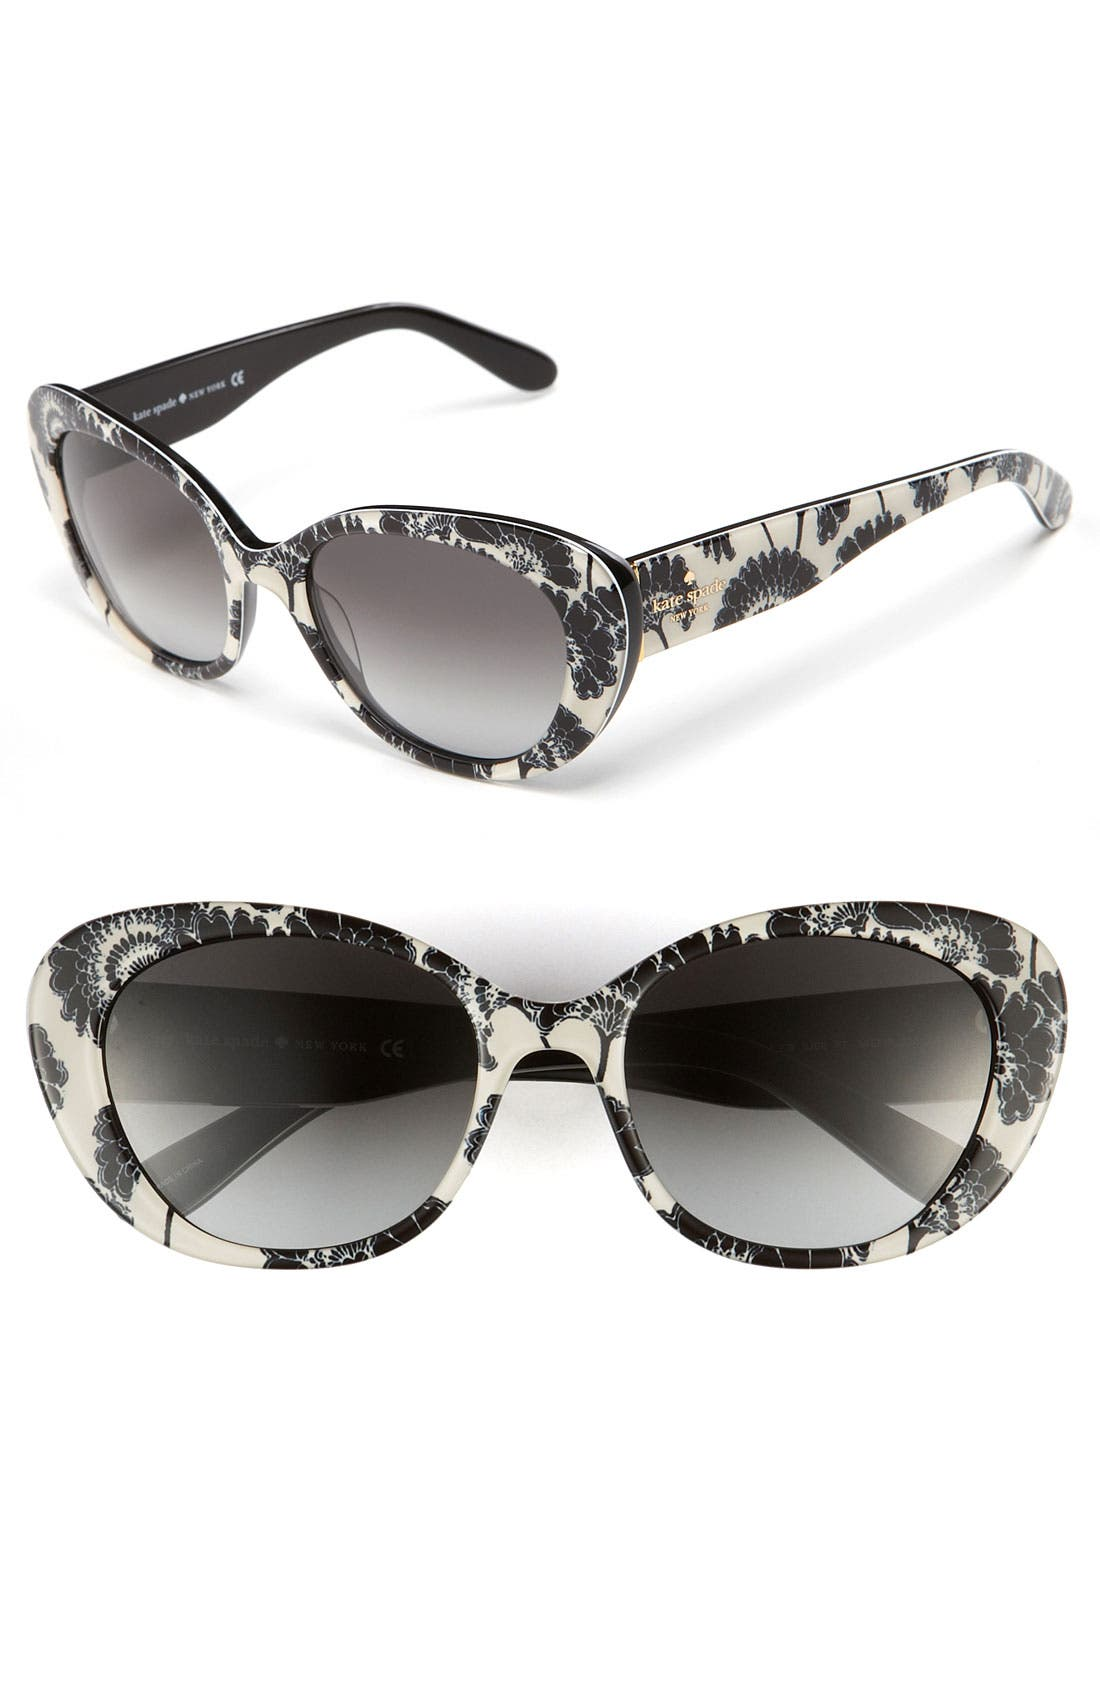 Alternate Image 1 Selected - kate spade new york 'franca 2' retro sunglasses